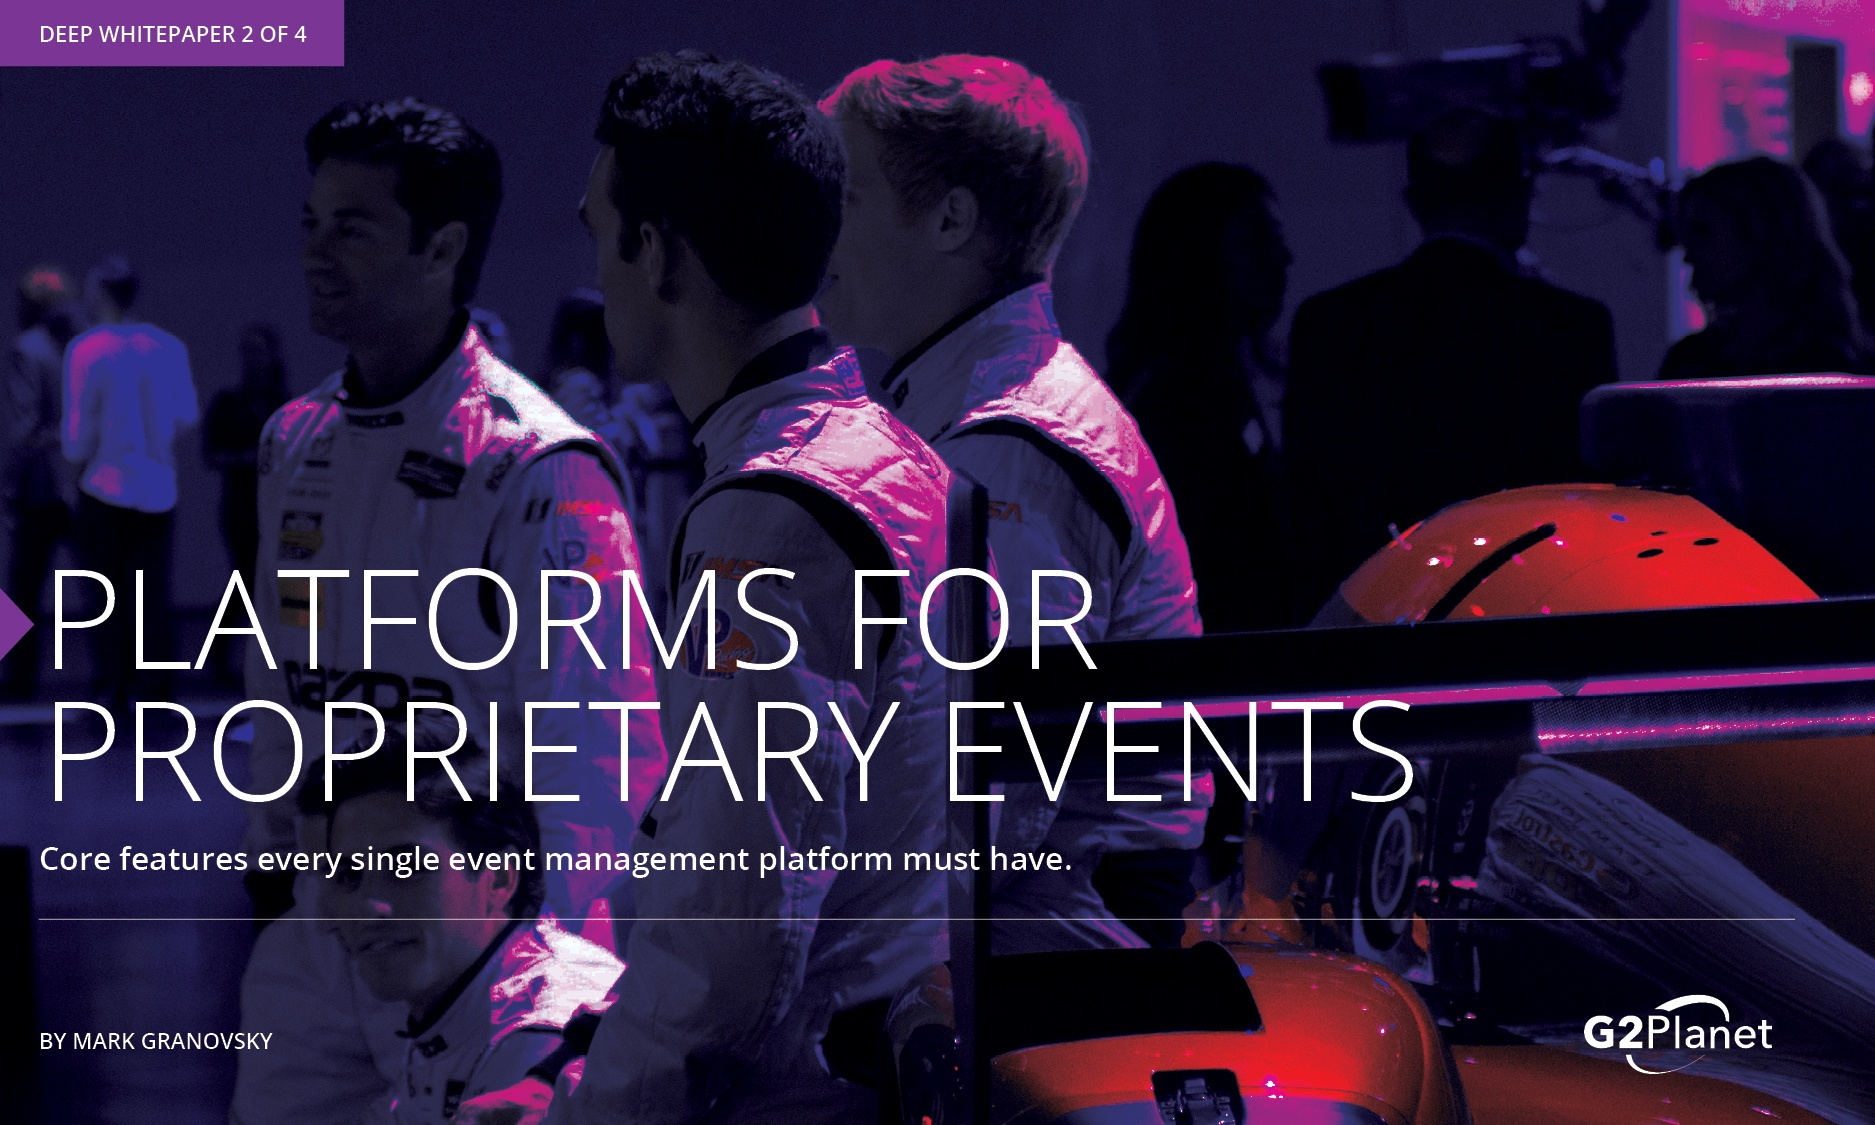 Platforms for Proprietary Events